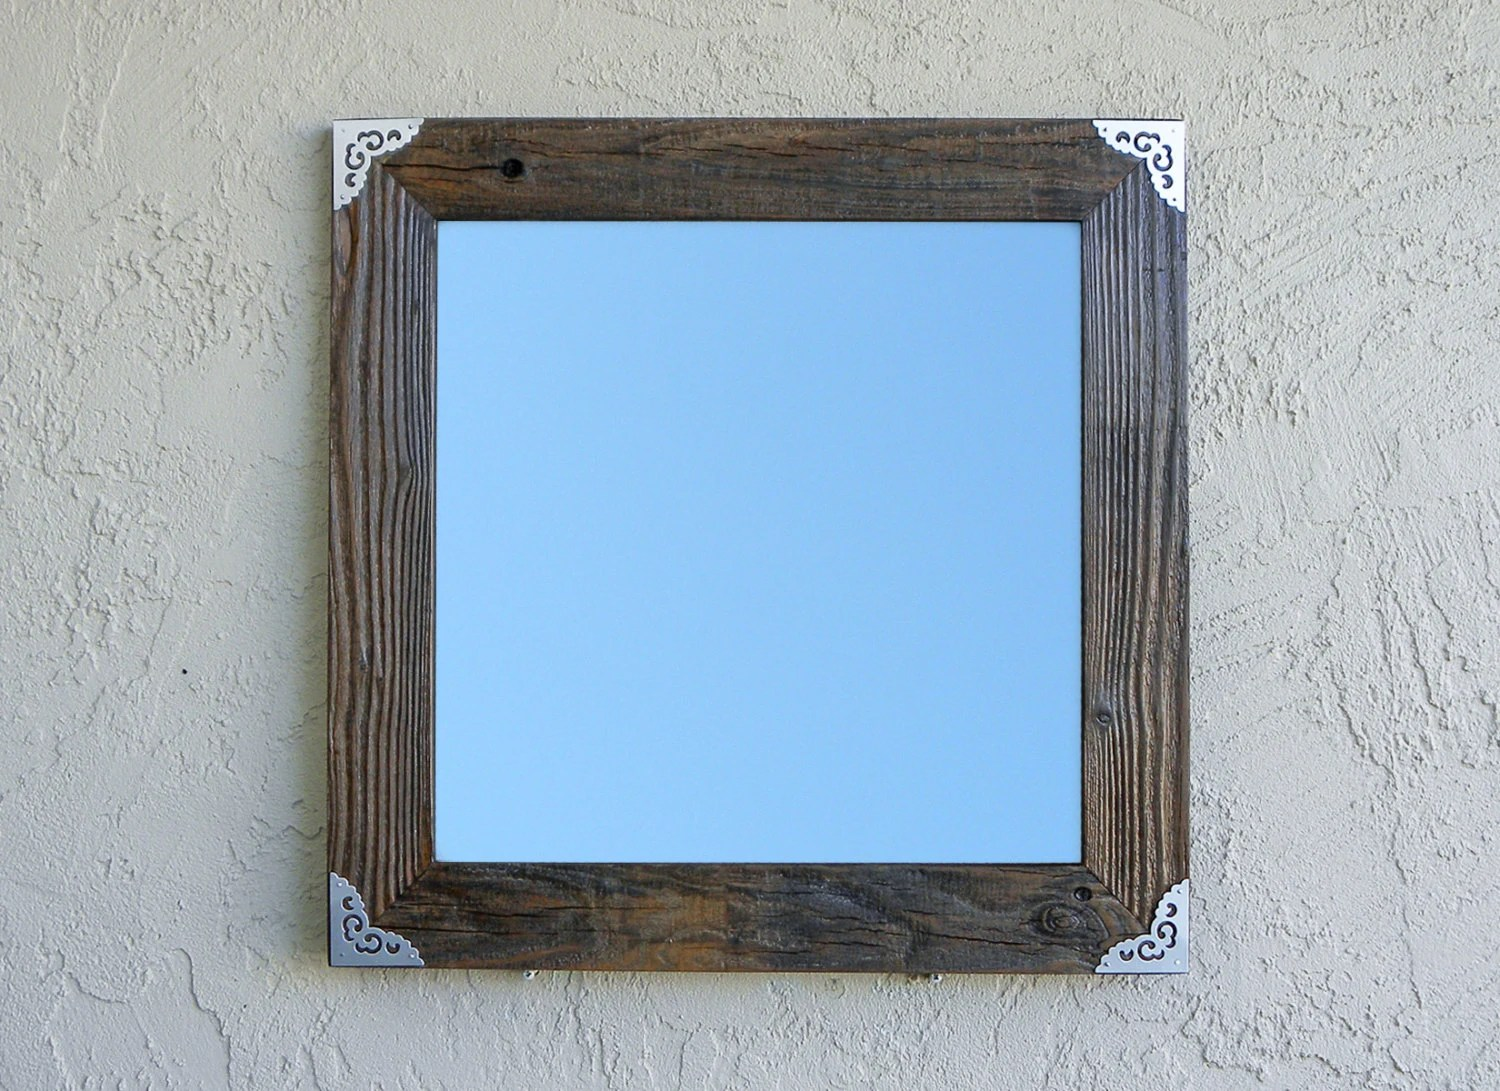 Reclaimed Wood Mirror With Silver Metal Corners. Rustic